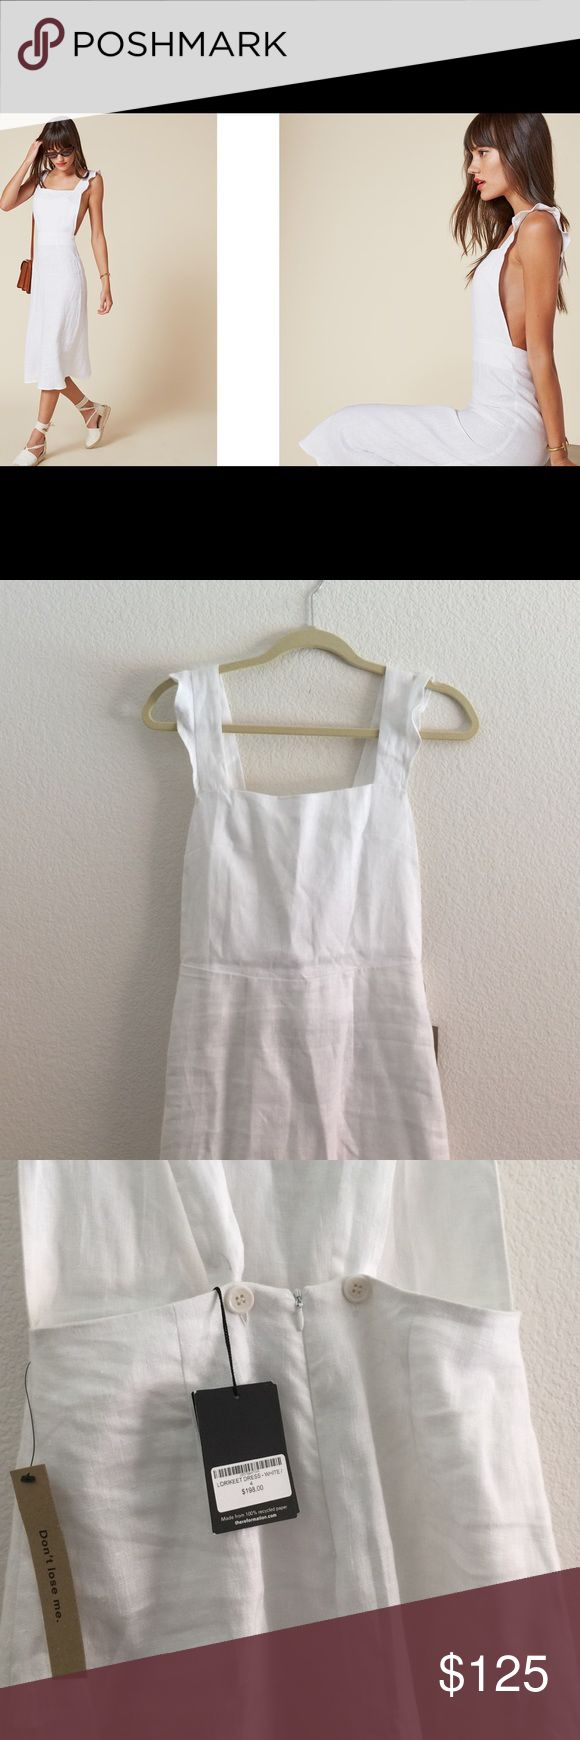 ✨NWT✨ Brand new Reformation Linen Dress Brand new with tag dress bought at Reformation sale recently. It doesn't fit me right so my loss is your gain! Made of beautiful white linen. Midi-length. Low back design. So elegant and feminine. No trades. Price firm. Reformation Dresses Midi